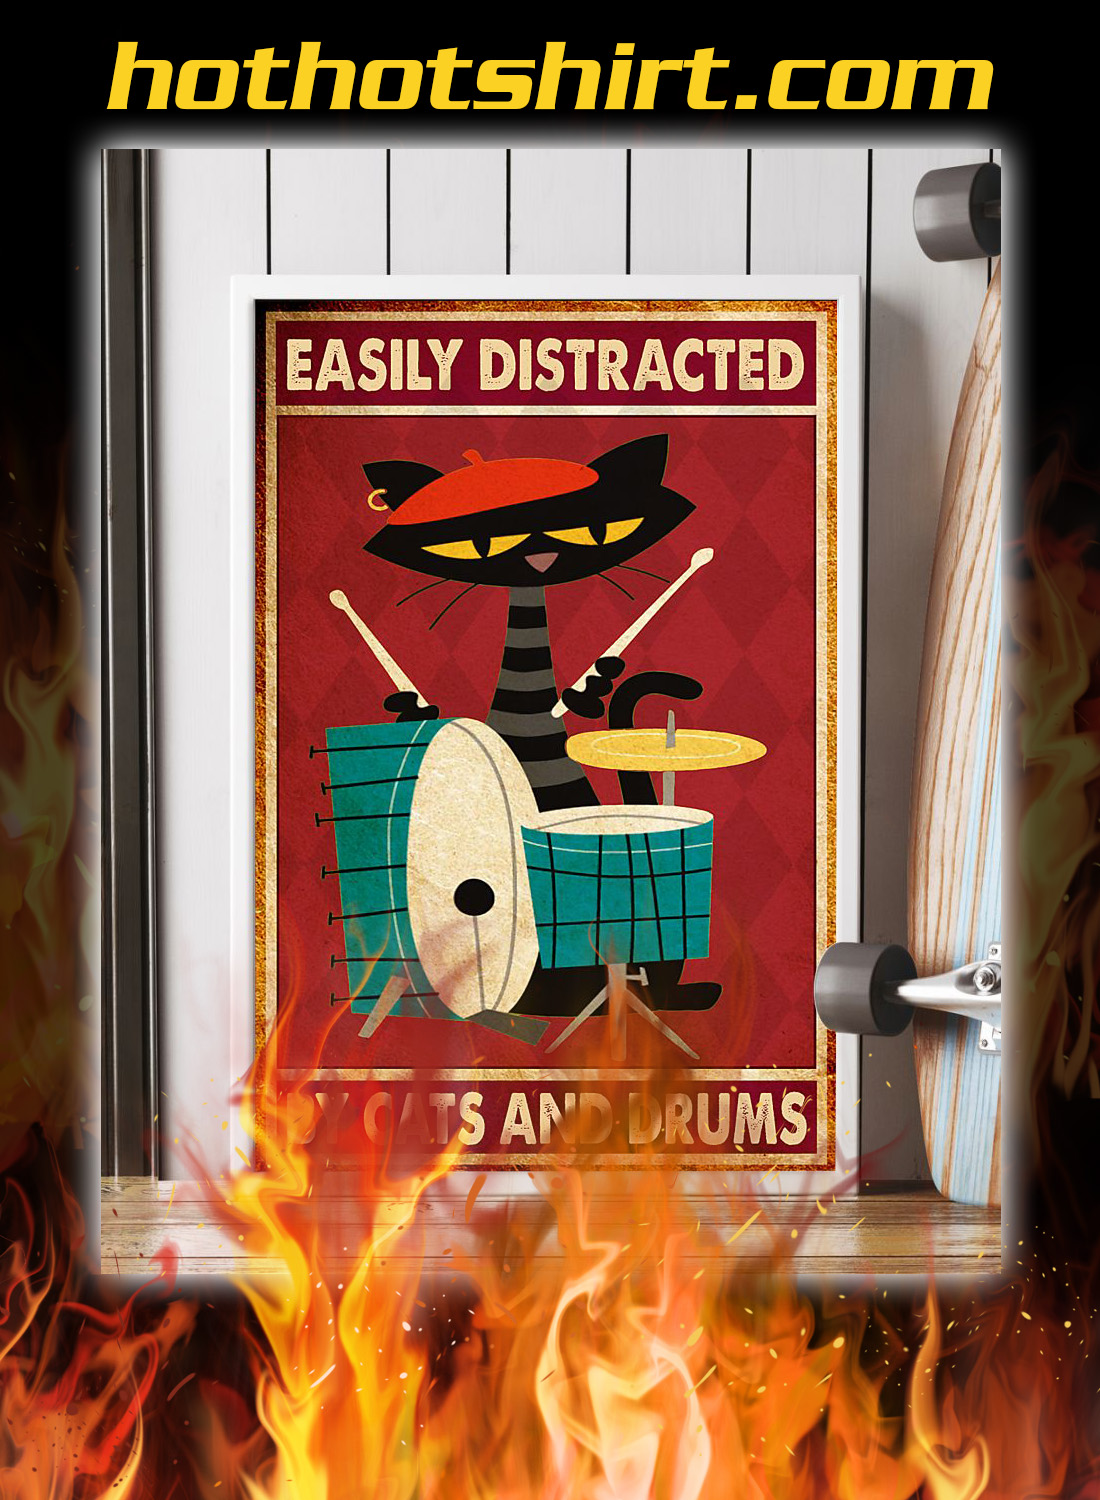 Easily distracted by cats and drums poster 2